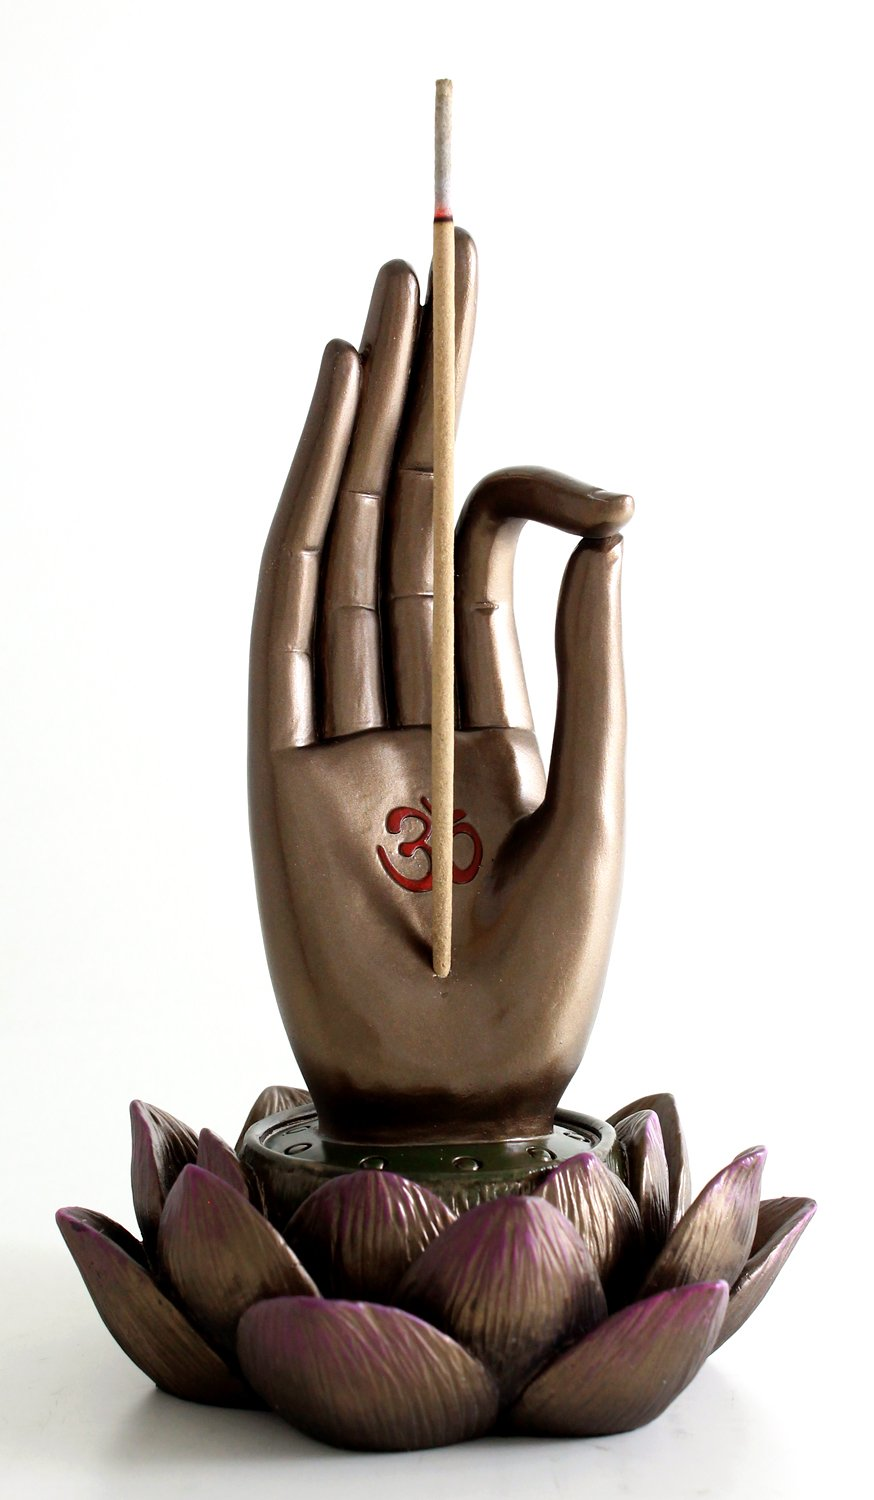 Top Collection Buddha Hand and Lotus Flower Vitarka Mudra Incense Holder Incense Burner by Top Collection (Image #5)